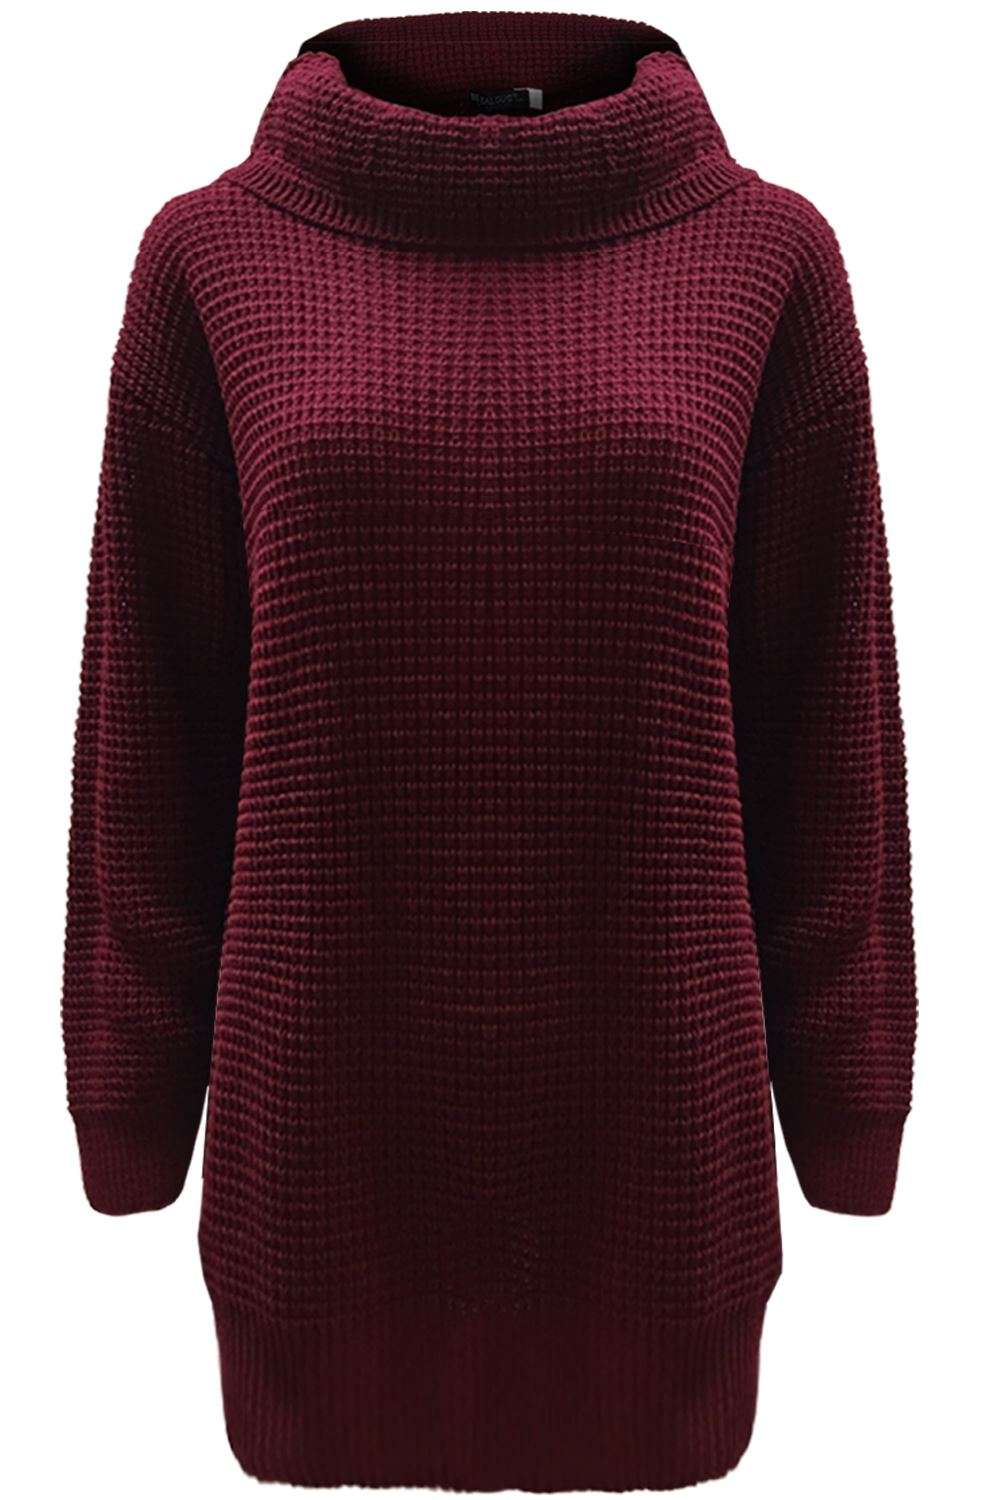 f0c07882c852 Ladies Womens Casual Cowl Roll Neck Chunky Knitted Oversized Jumper ...